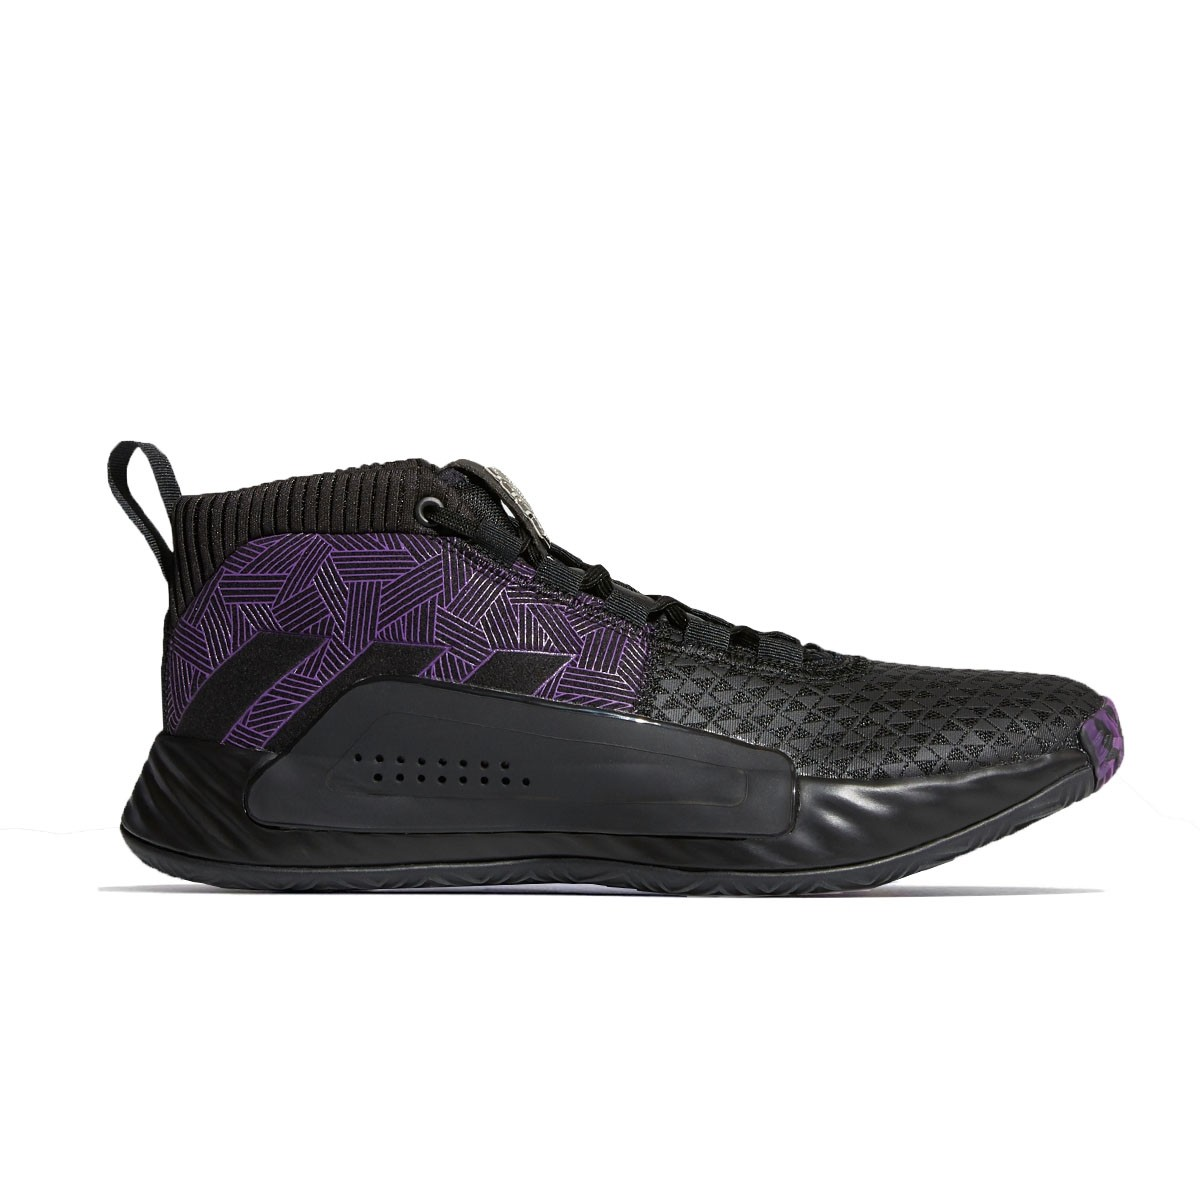 ADIDAS Dame 5 Jr 'Black Panther'